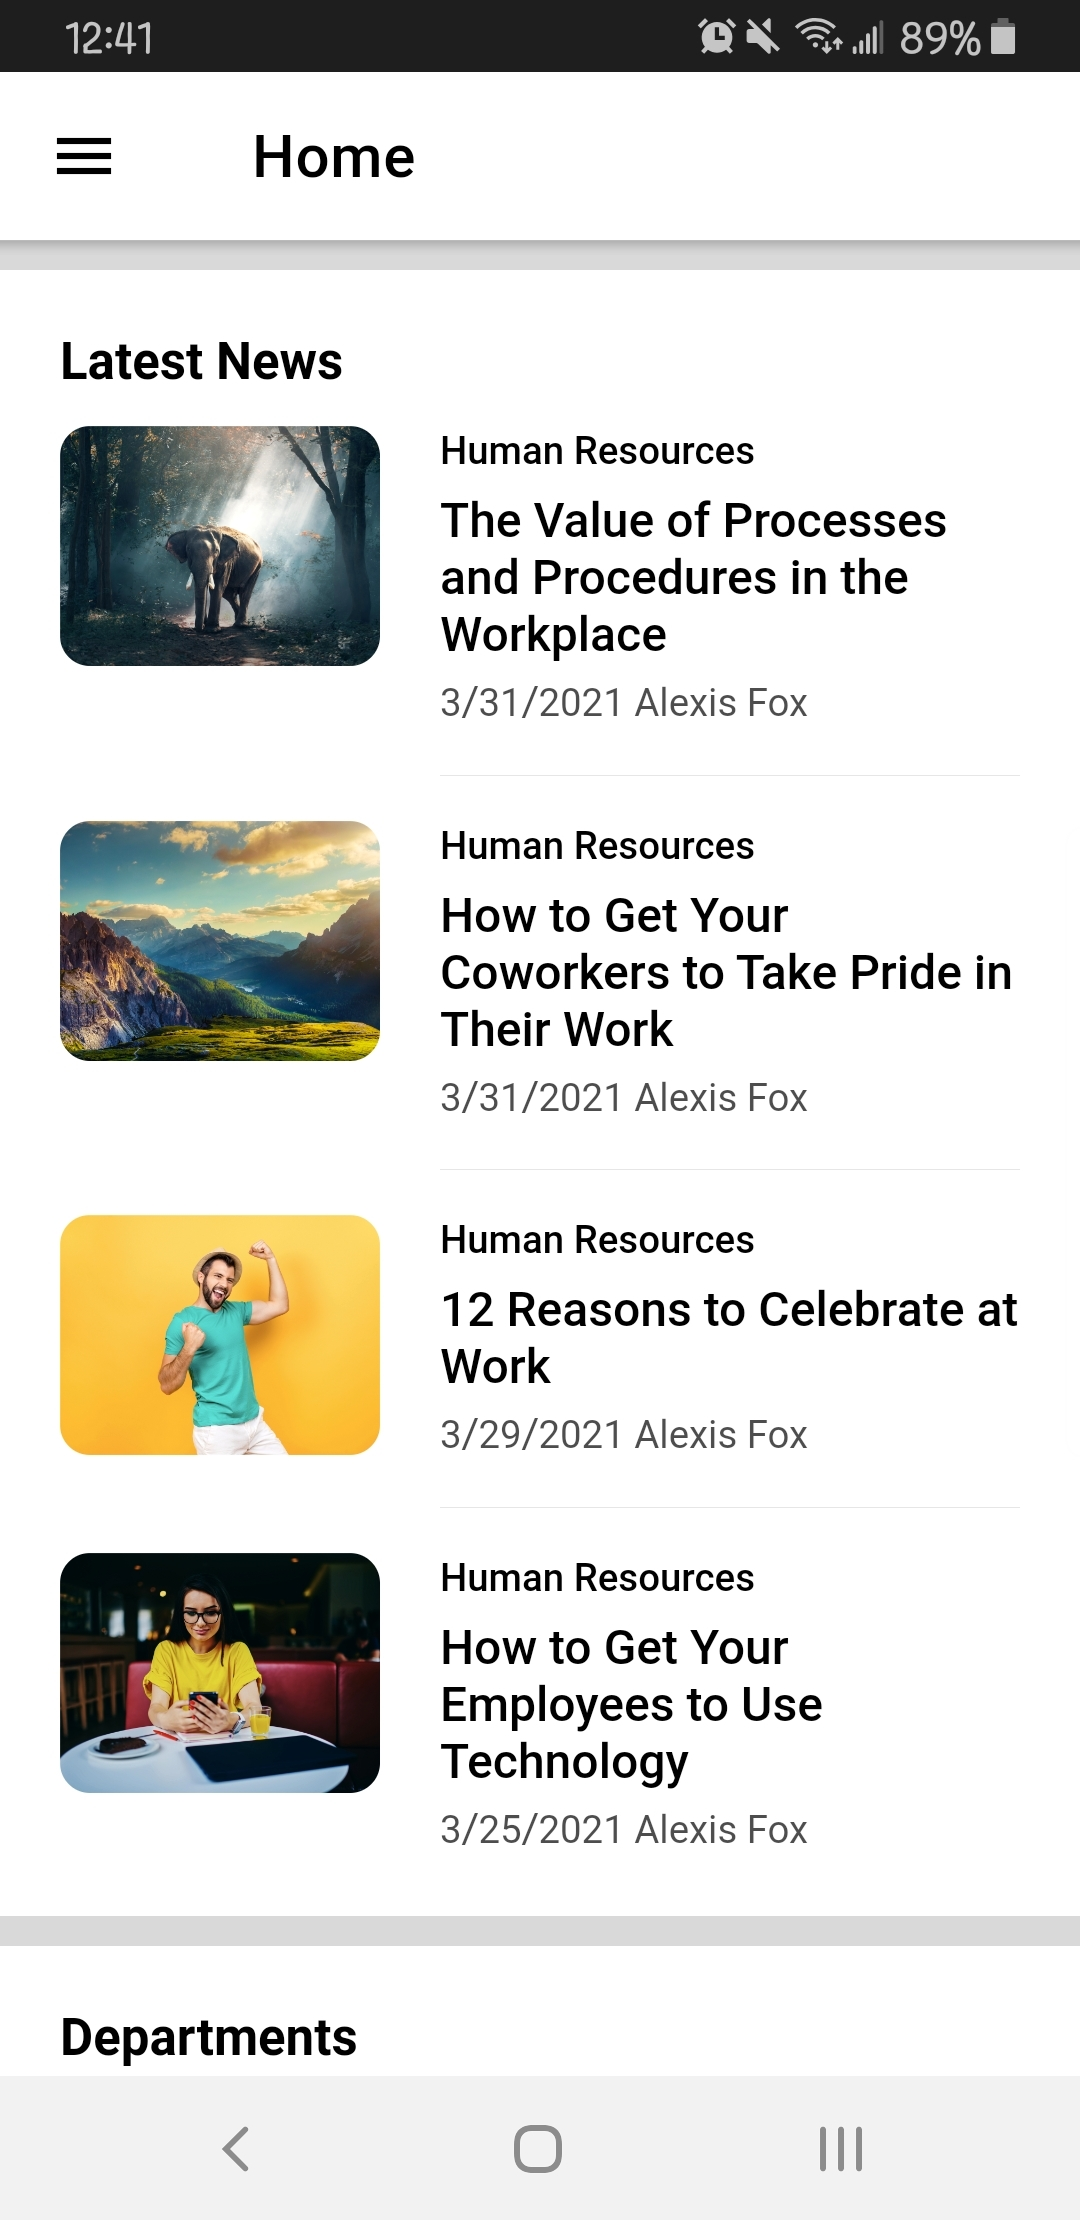 The mobile homepage